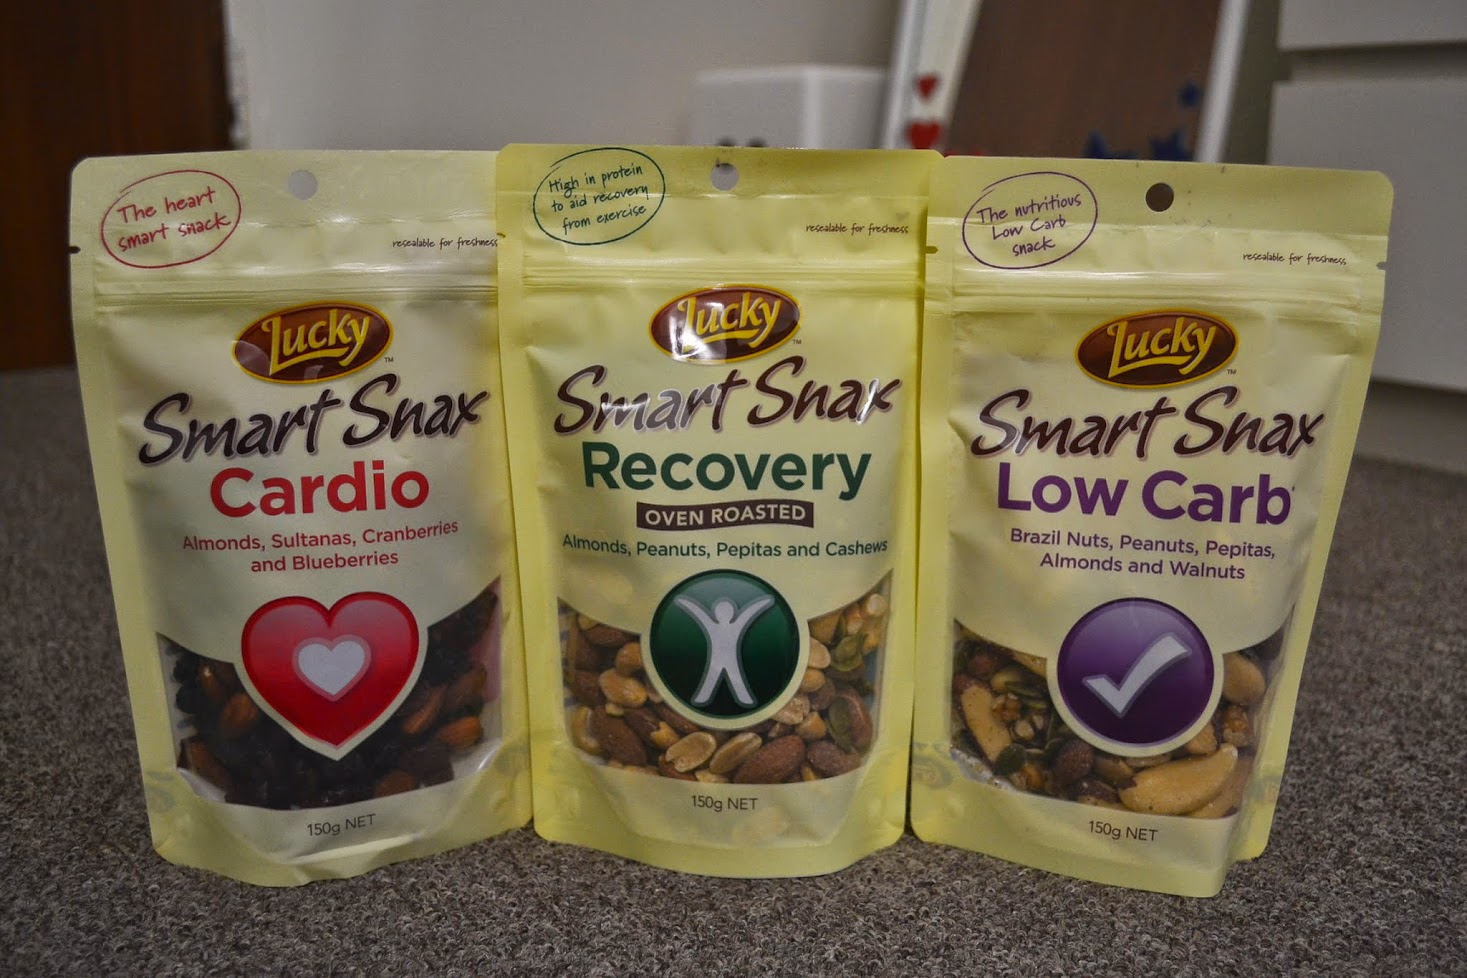 Lucky Smart Snax - Cardio, Recovery and Low Carb